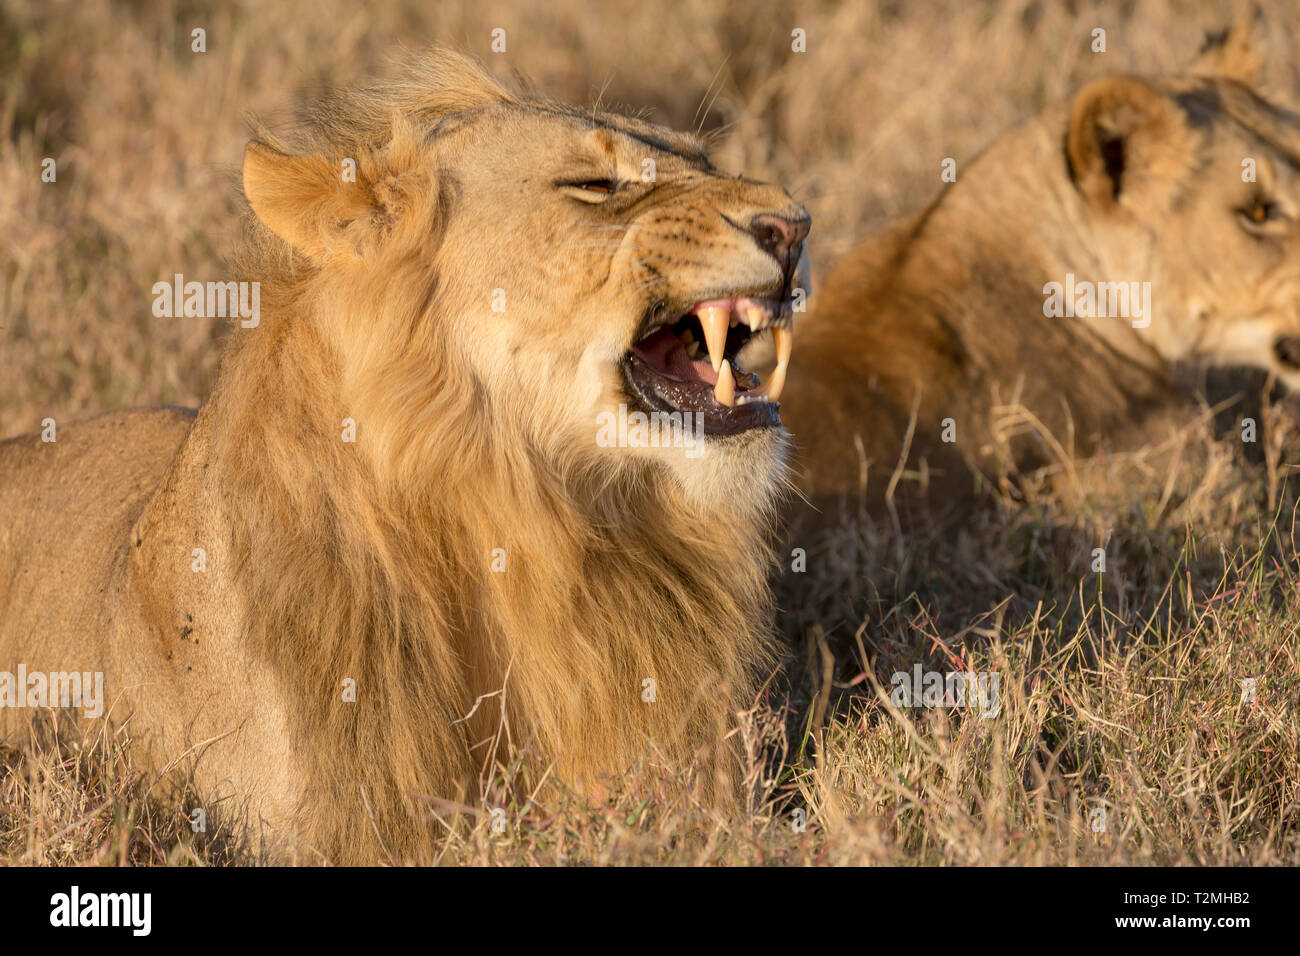 A young male and female lion laying in open grassland, closer view, male in foreground and snarling, Lewa Conservancy, Lewa, Kenya, Africa - Stock Image